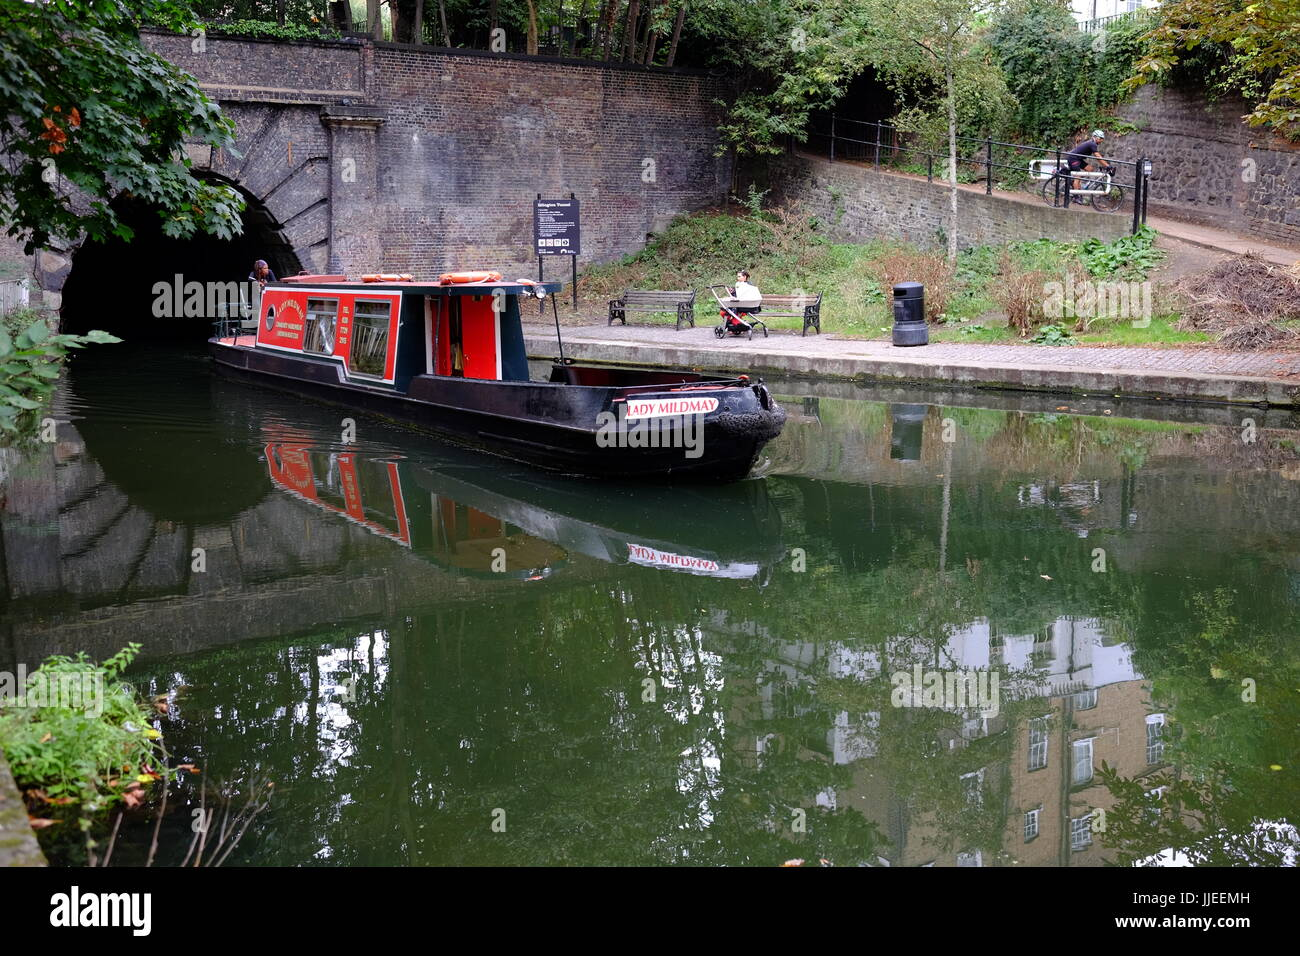 Lifestyle changes made by living in house boats on the Regents Canal near the Islington Tunnel, a hidden and very Stock Photo